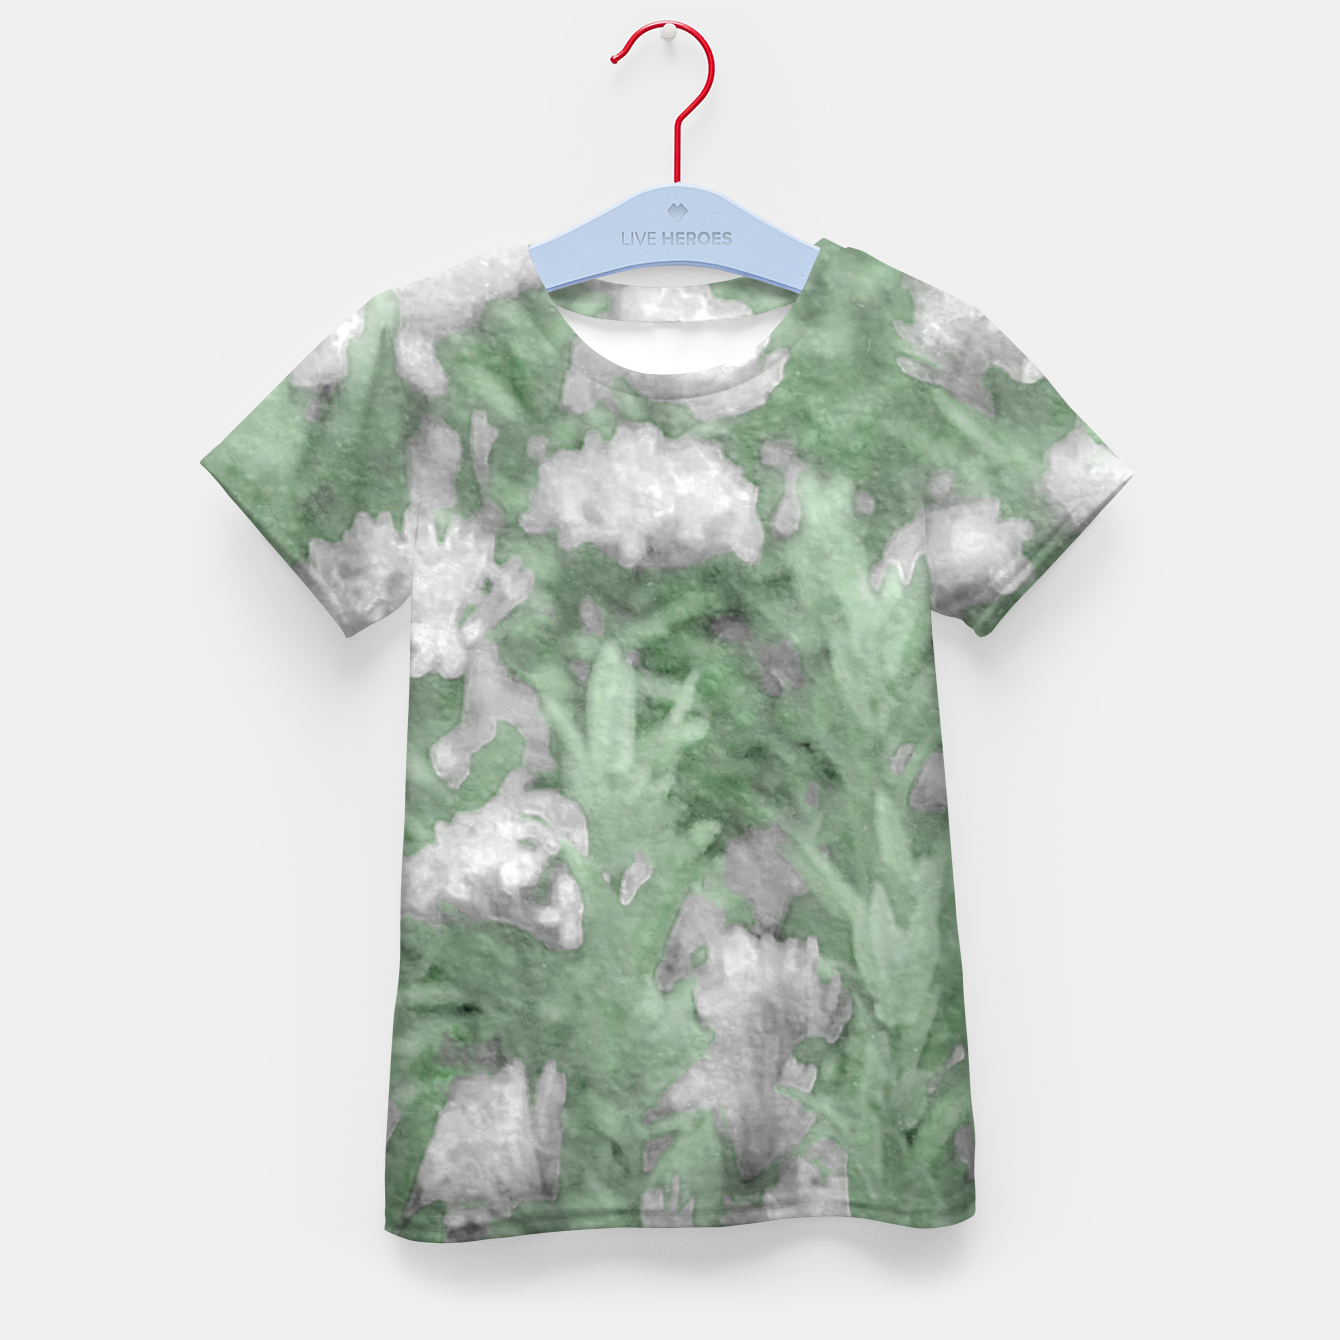 Image de Green and White Textured Botanical Motif Manipulated Photo Kid's t-shirt - Live Heroes